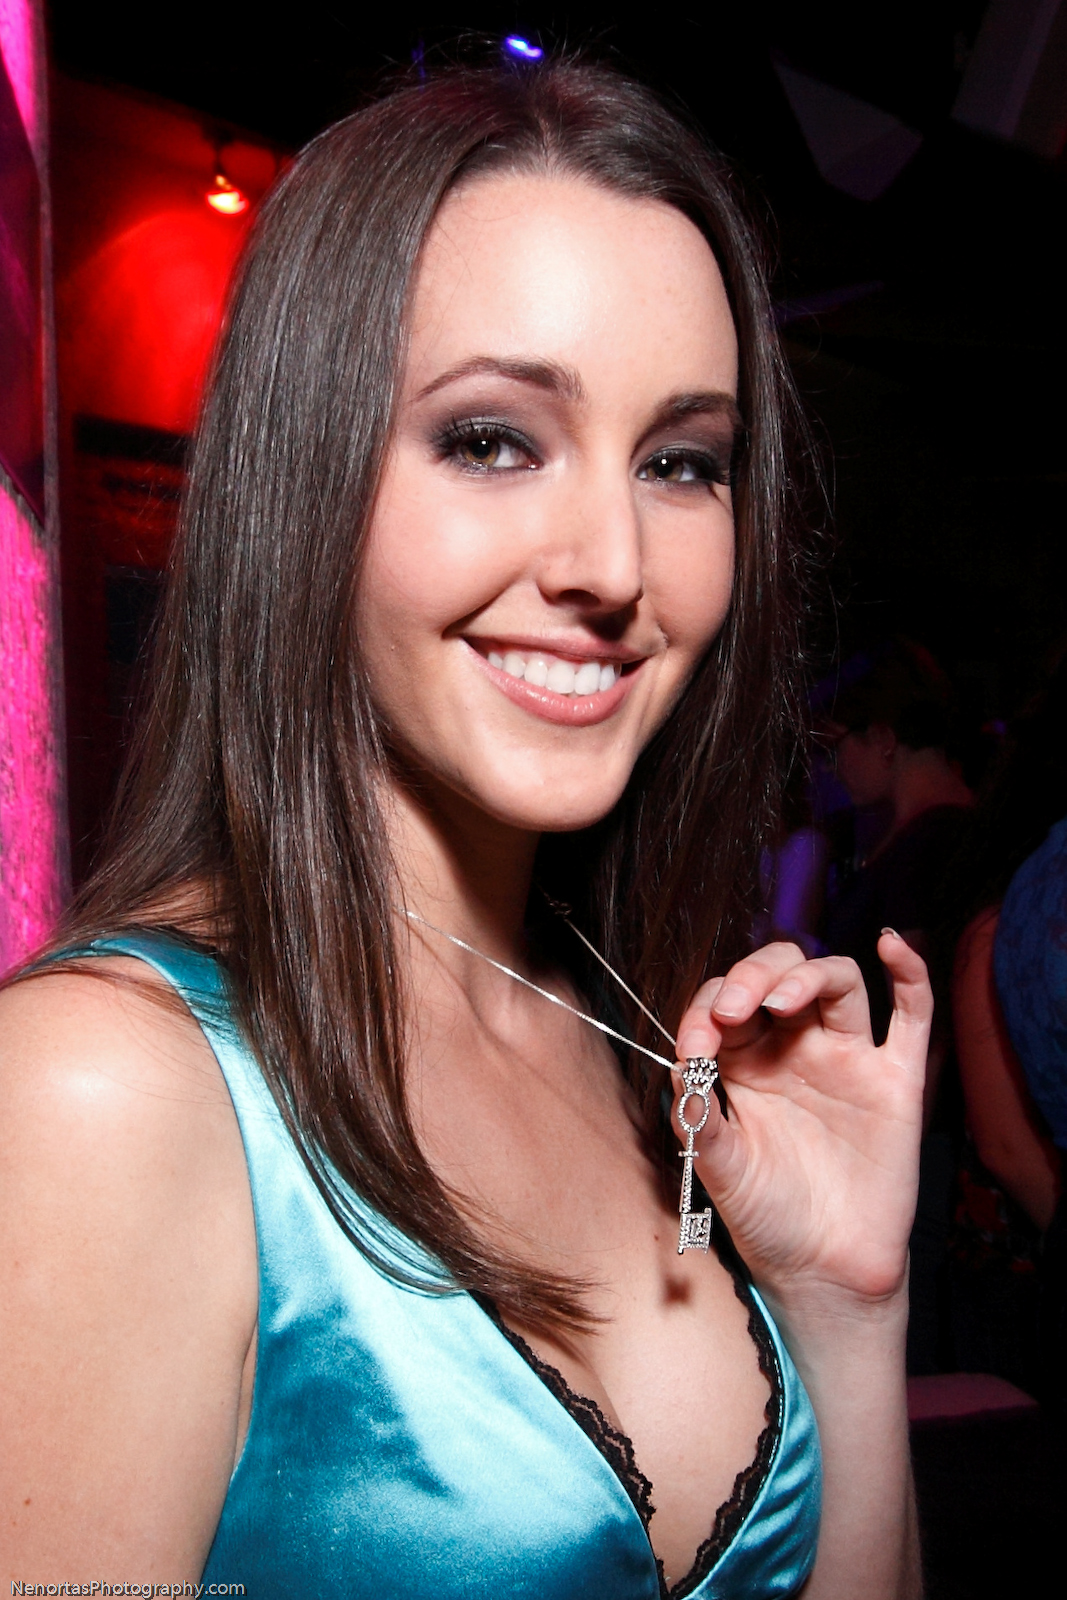 ericaellyson_2008 Penthouse Pet of the Year, Erica Ellyson @ The Livingroom 3.7.09 | Flickr - Photo ...